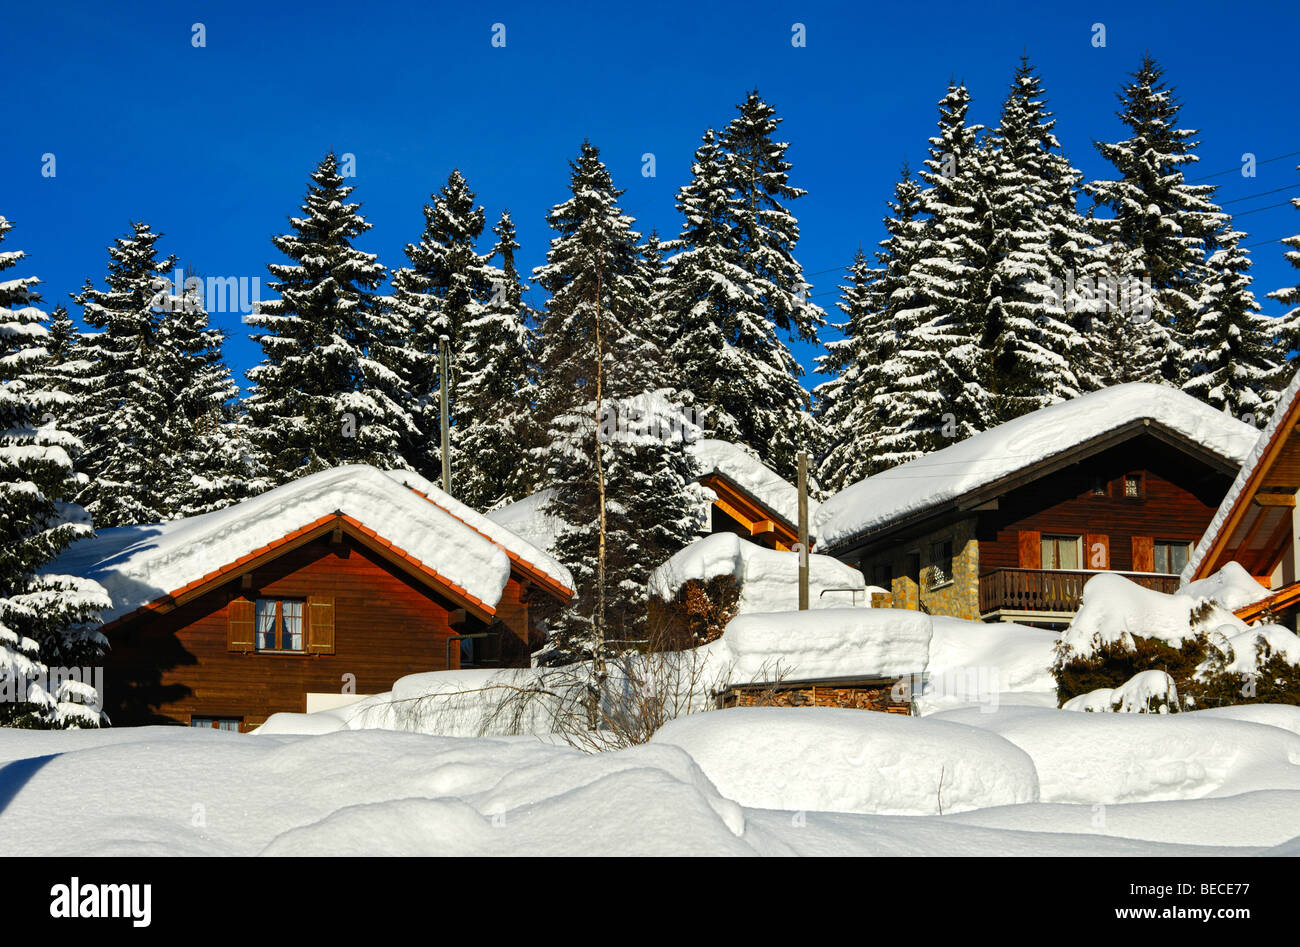 Snow-covered block houses on the edge of a forest, Jura, Switzerland - Stock Image